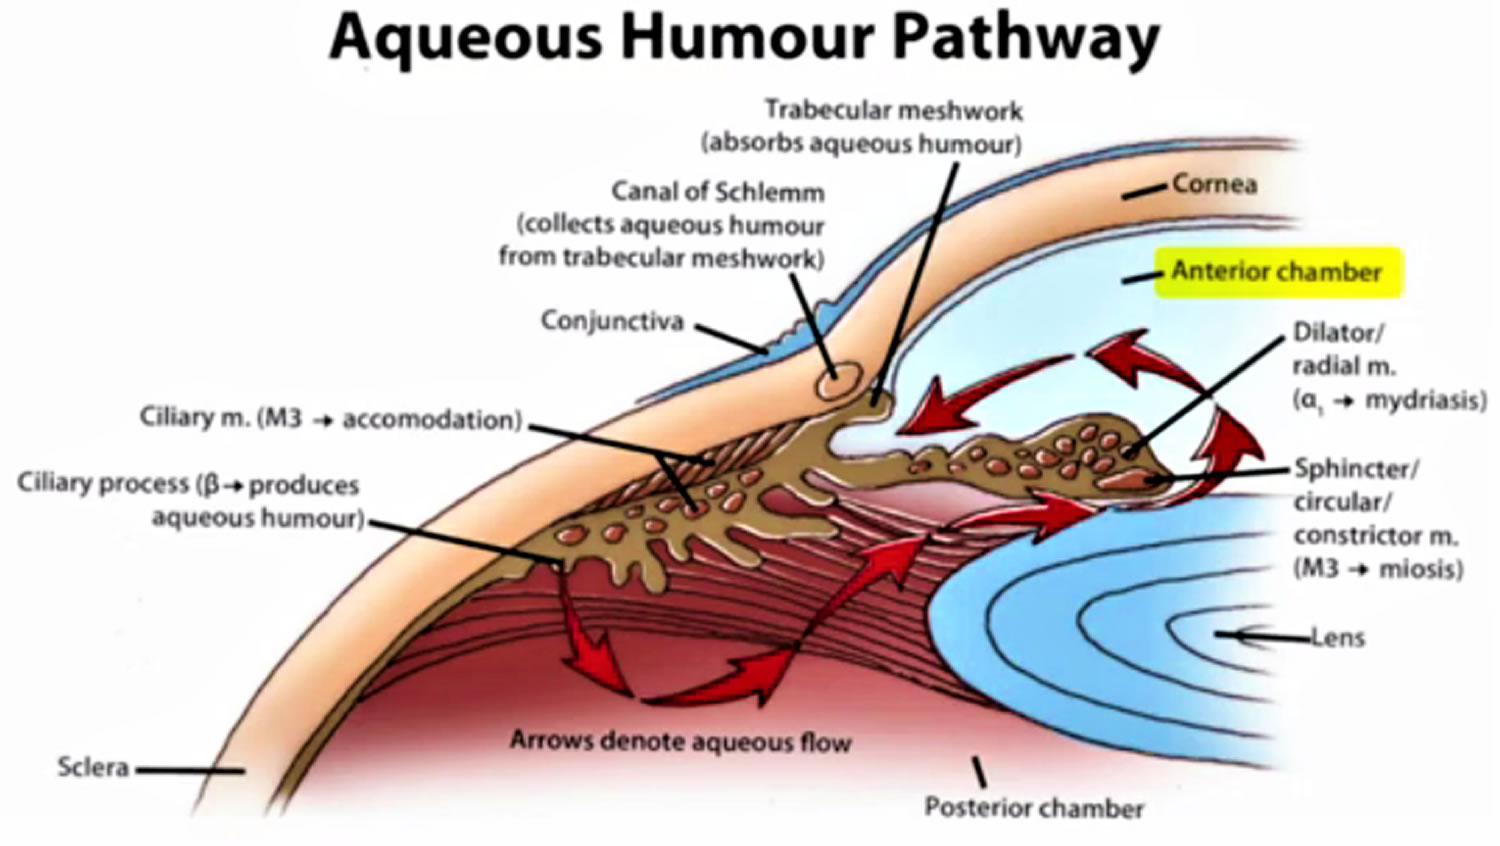 Normal aqueous outflow